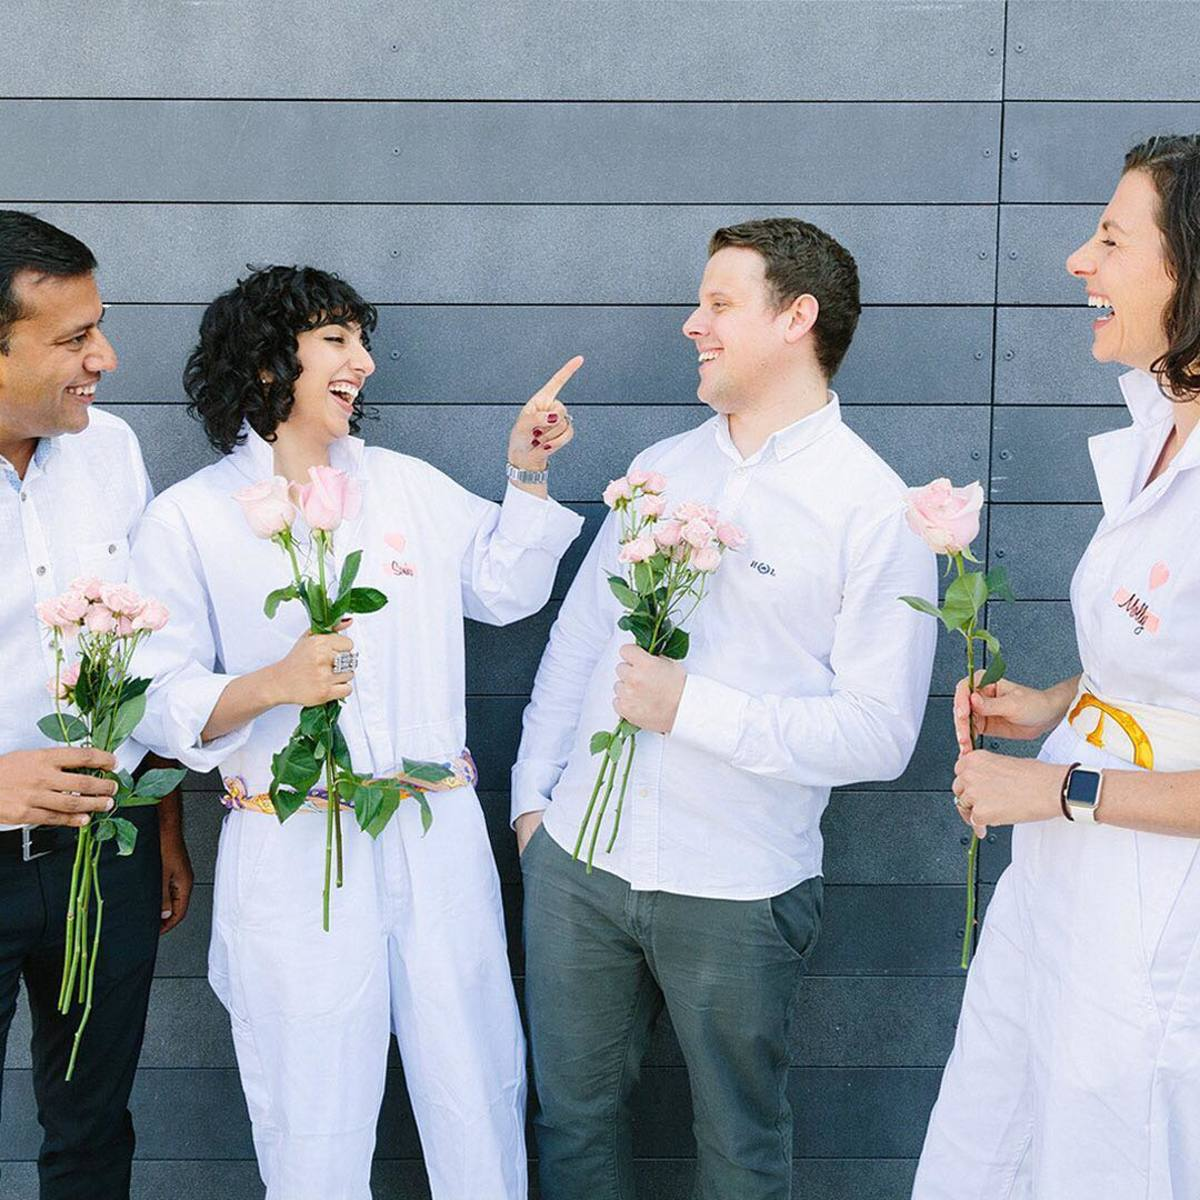 The Love Beauty and Planet team. Photo: @lovebeautyandplanet/Instagram